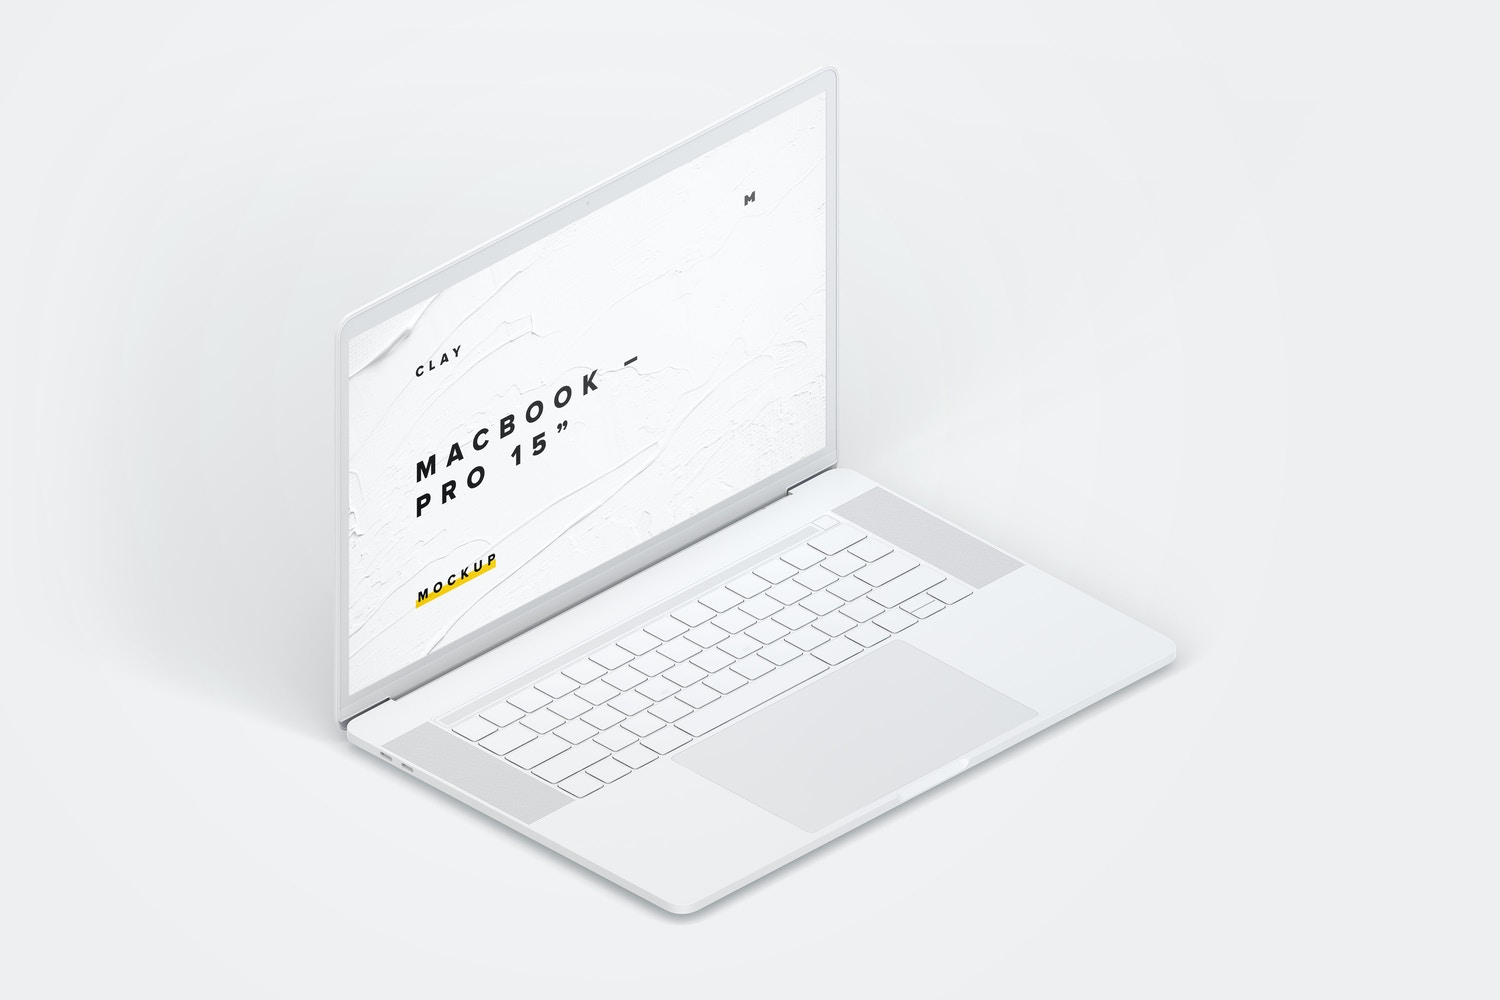 "Clay MacBook Pro 15"" with Touch Bar, Left Isometric View Mockup (1) by Original Mockups on Original Mockups"